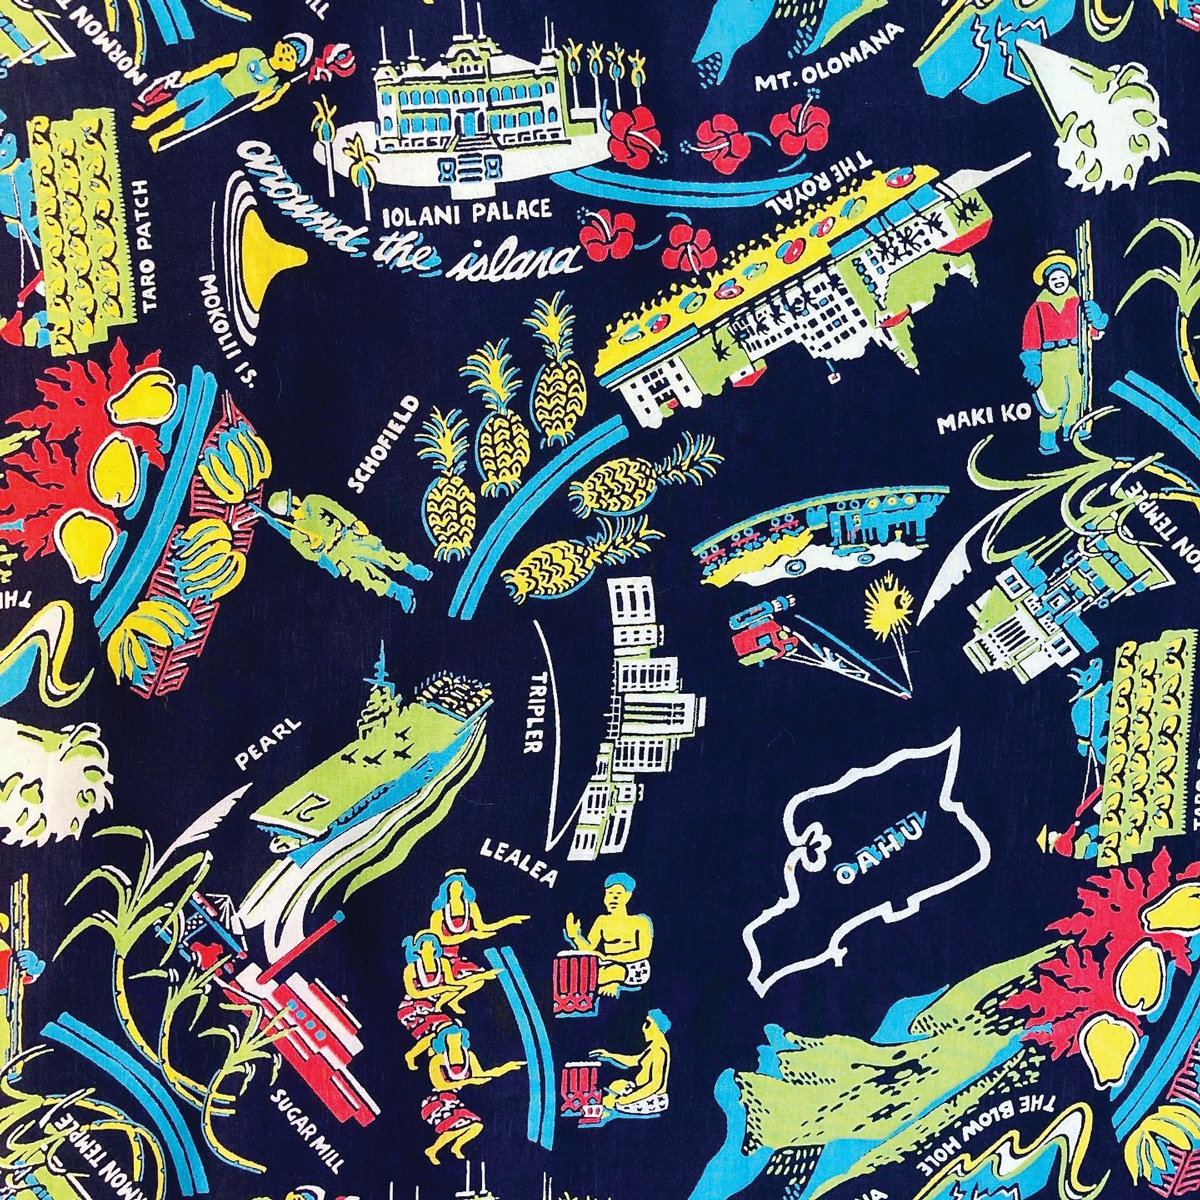 An image of colorful textiles in Hawaiian print